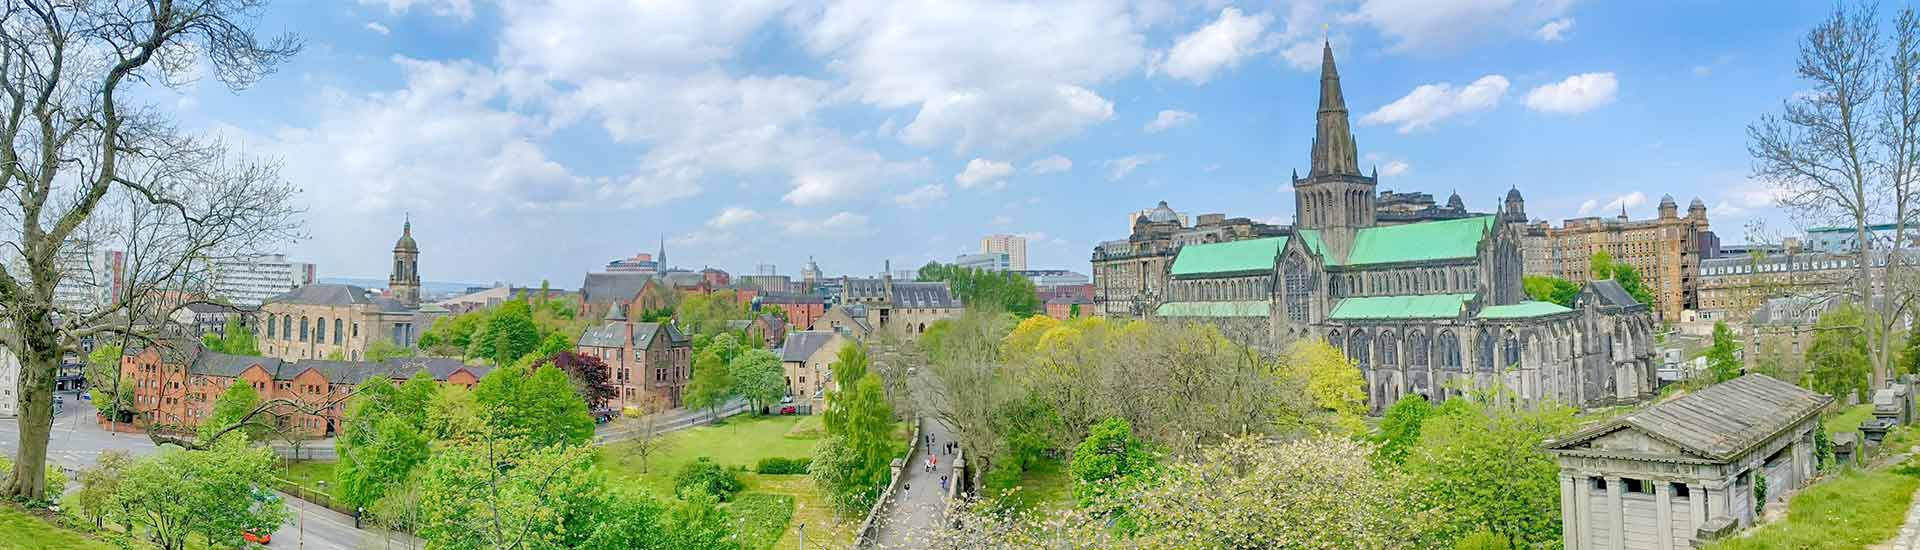 Hotels Near Glasgow City Centre